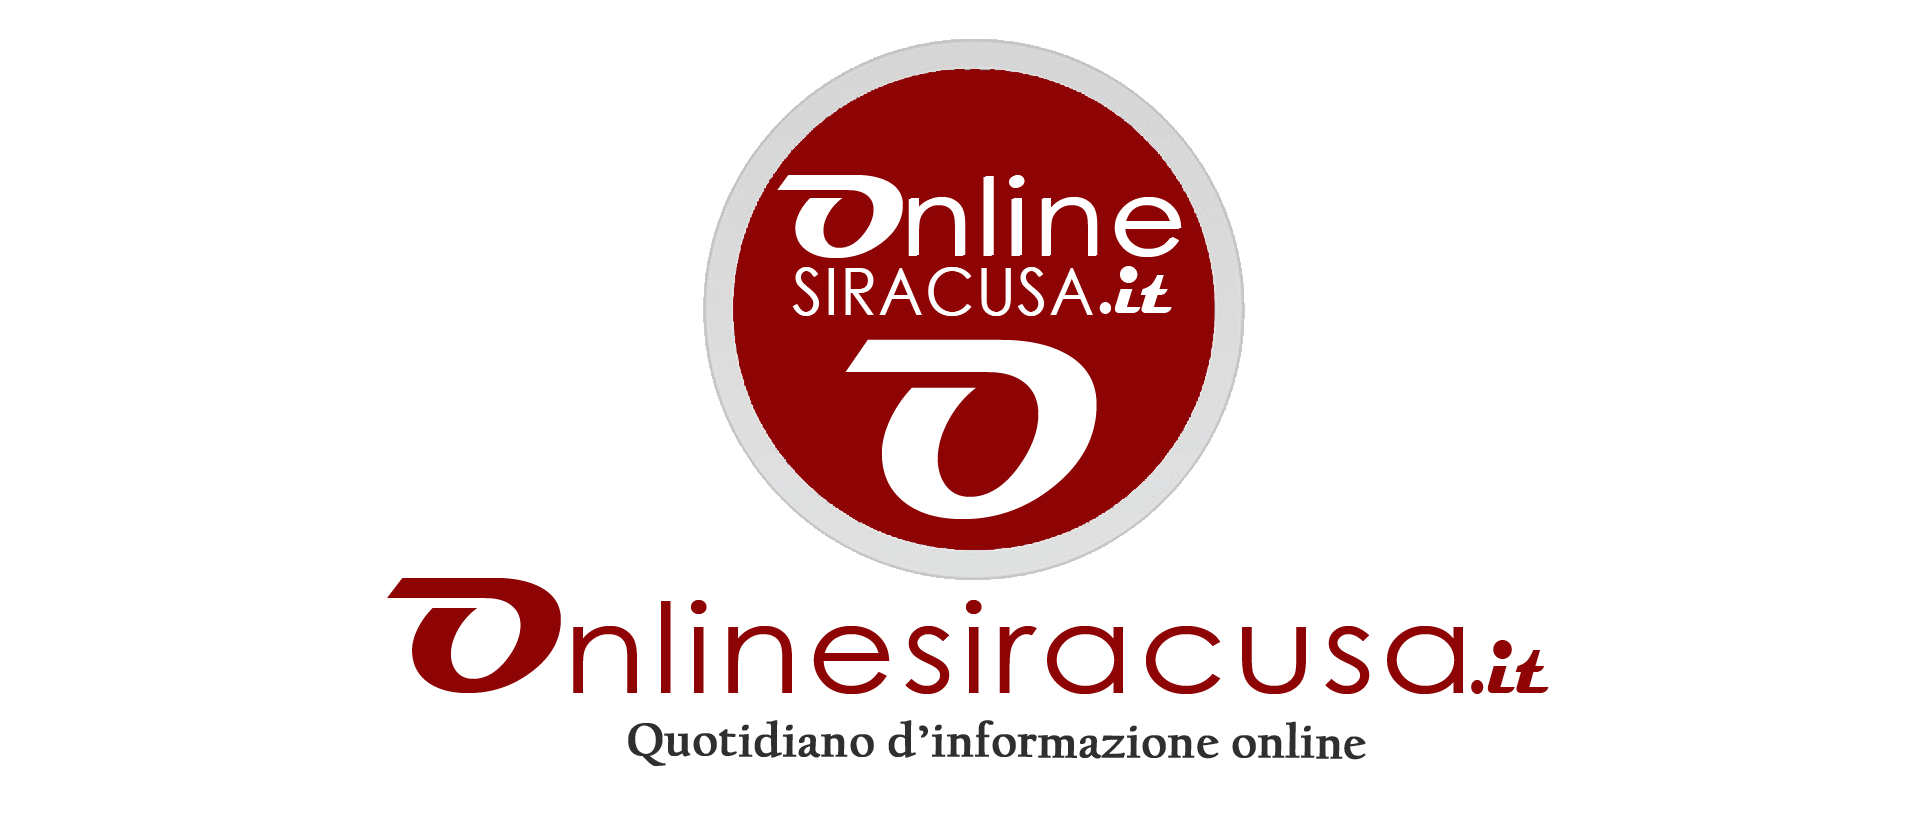 onlinesiracusa.it